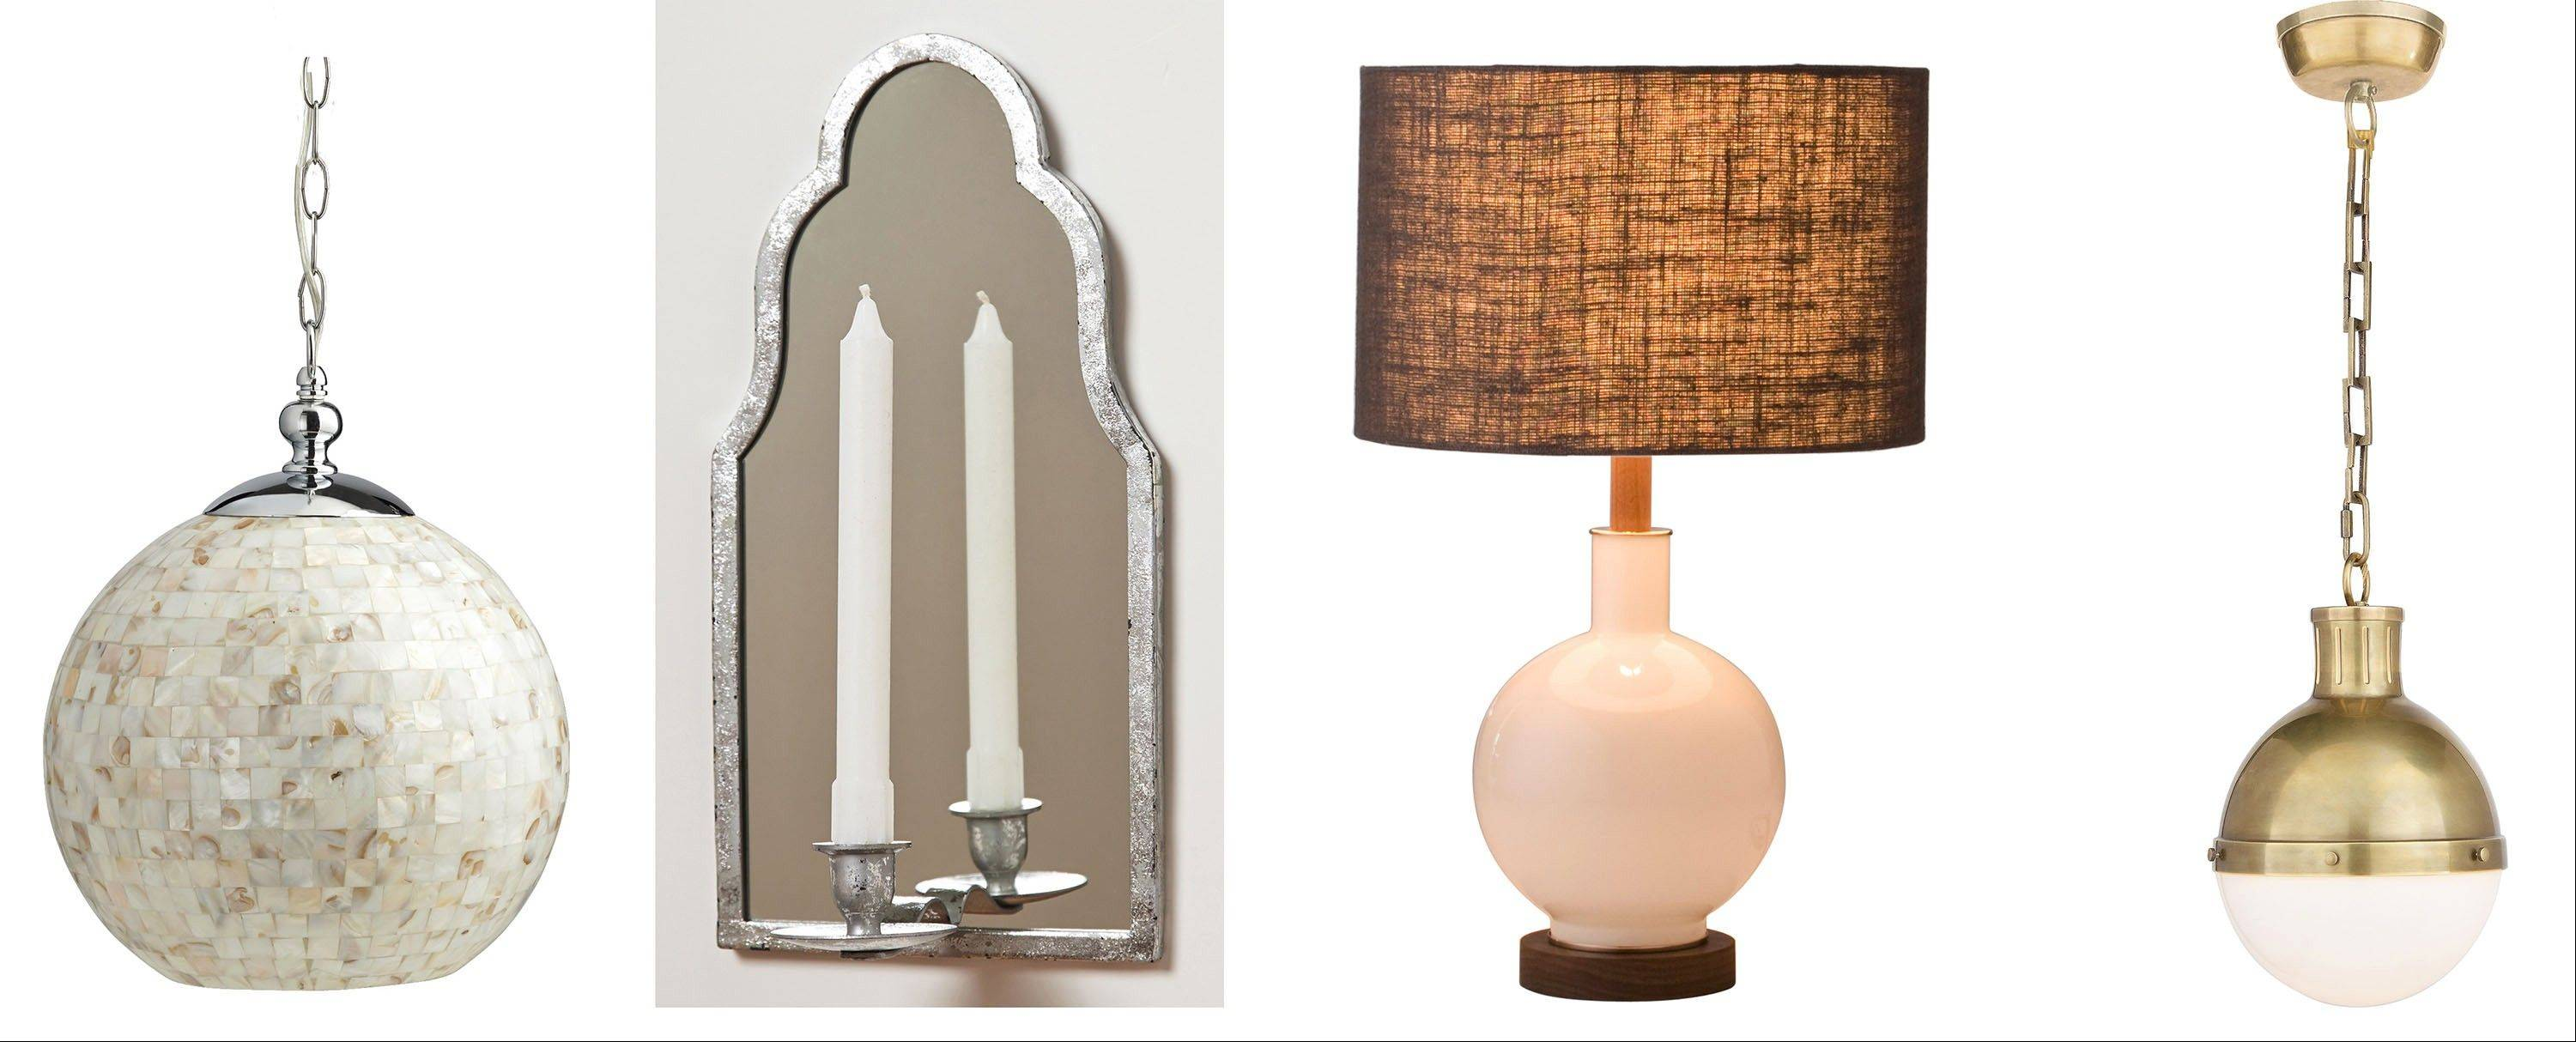 Good lighting in an entry is critical. From left, a mother-of-pearl hanging lamp from Pier 1 Imports; the Seaworn wall sconce from Anthropologie; the Bond opal table lamp and fabric shade; and Visual Comfort's small pendant by Thomas O'Brien in hand-rubbed antique brass with white glass.